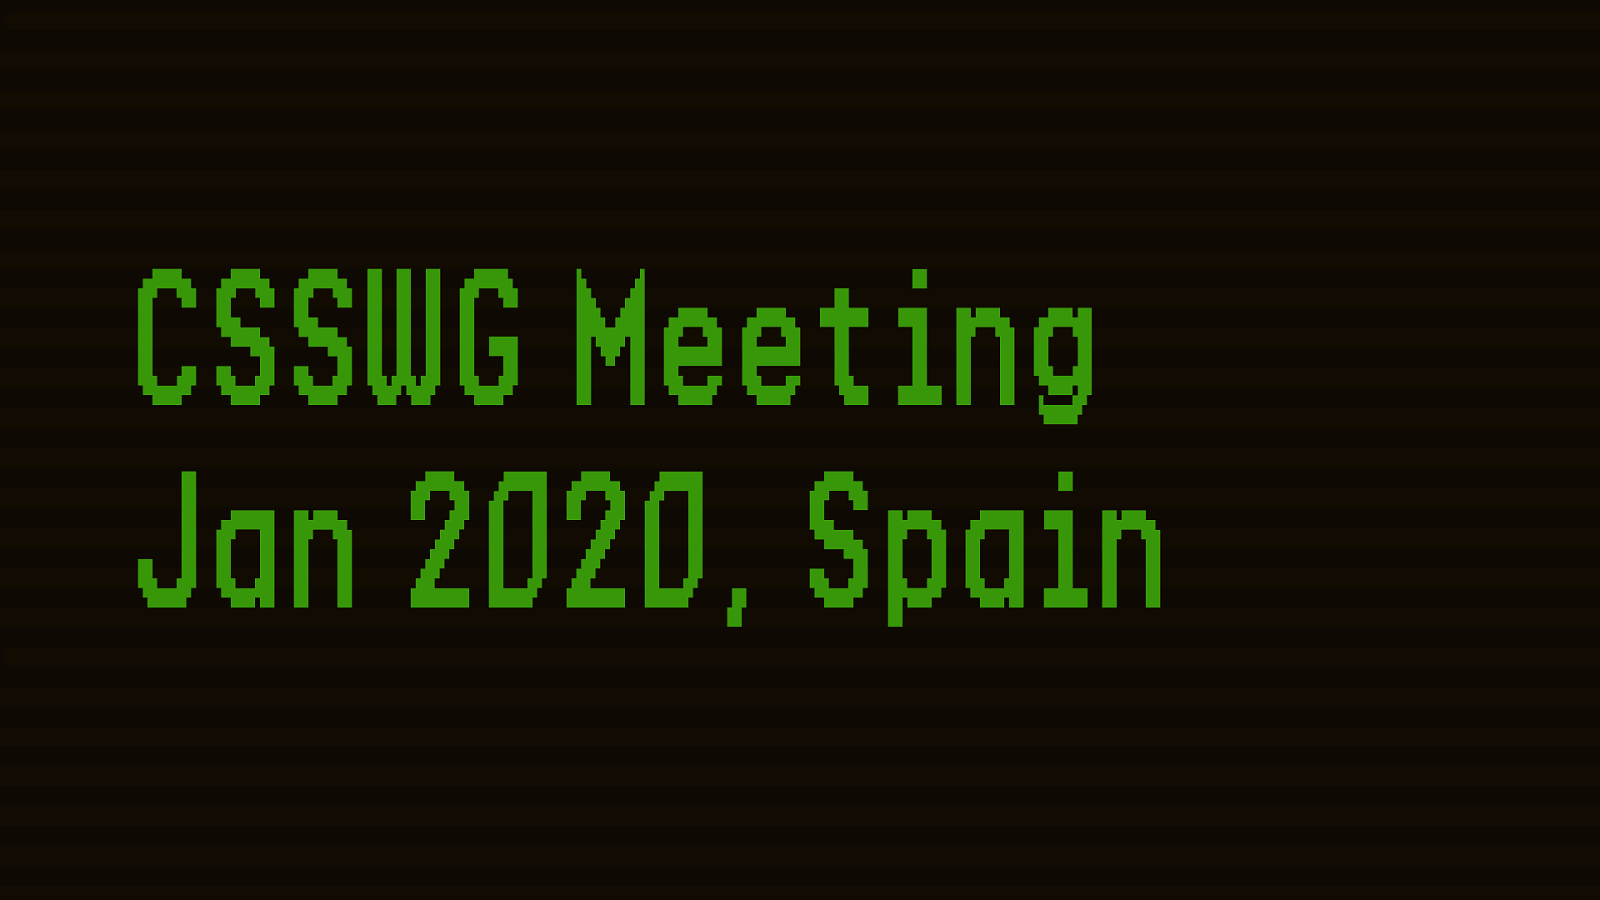 Three Topics For Jan 2020 CSSWG Meeting